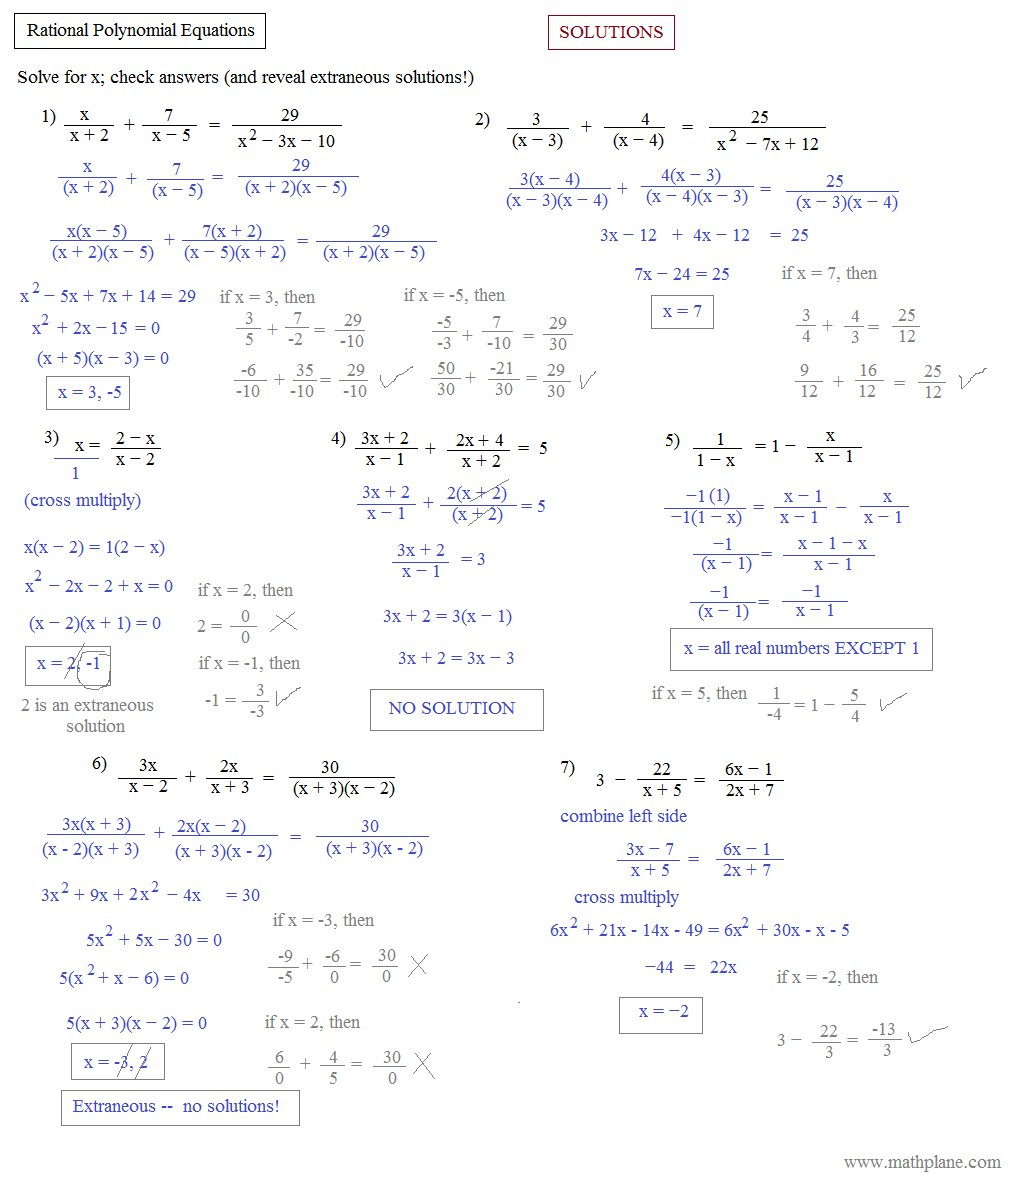 Solving Polynomial Equations Worksheets The Best Worksheets Image For Solving Polynomial Equations Worksheet Answers